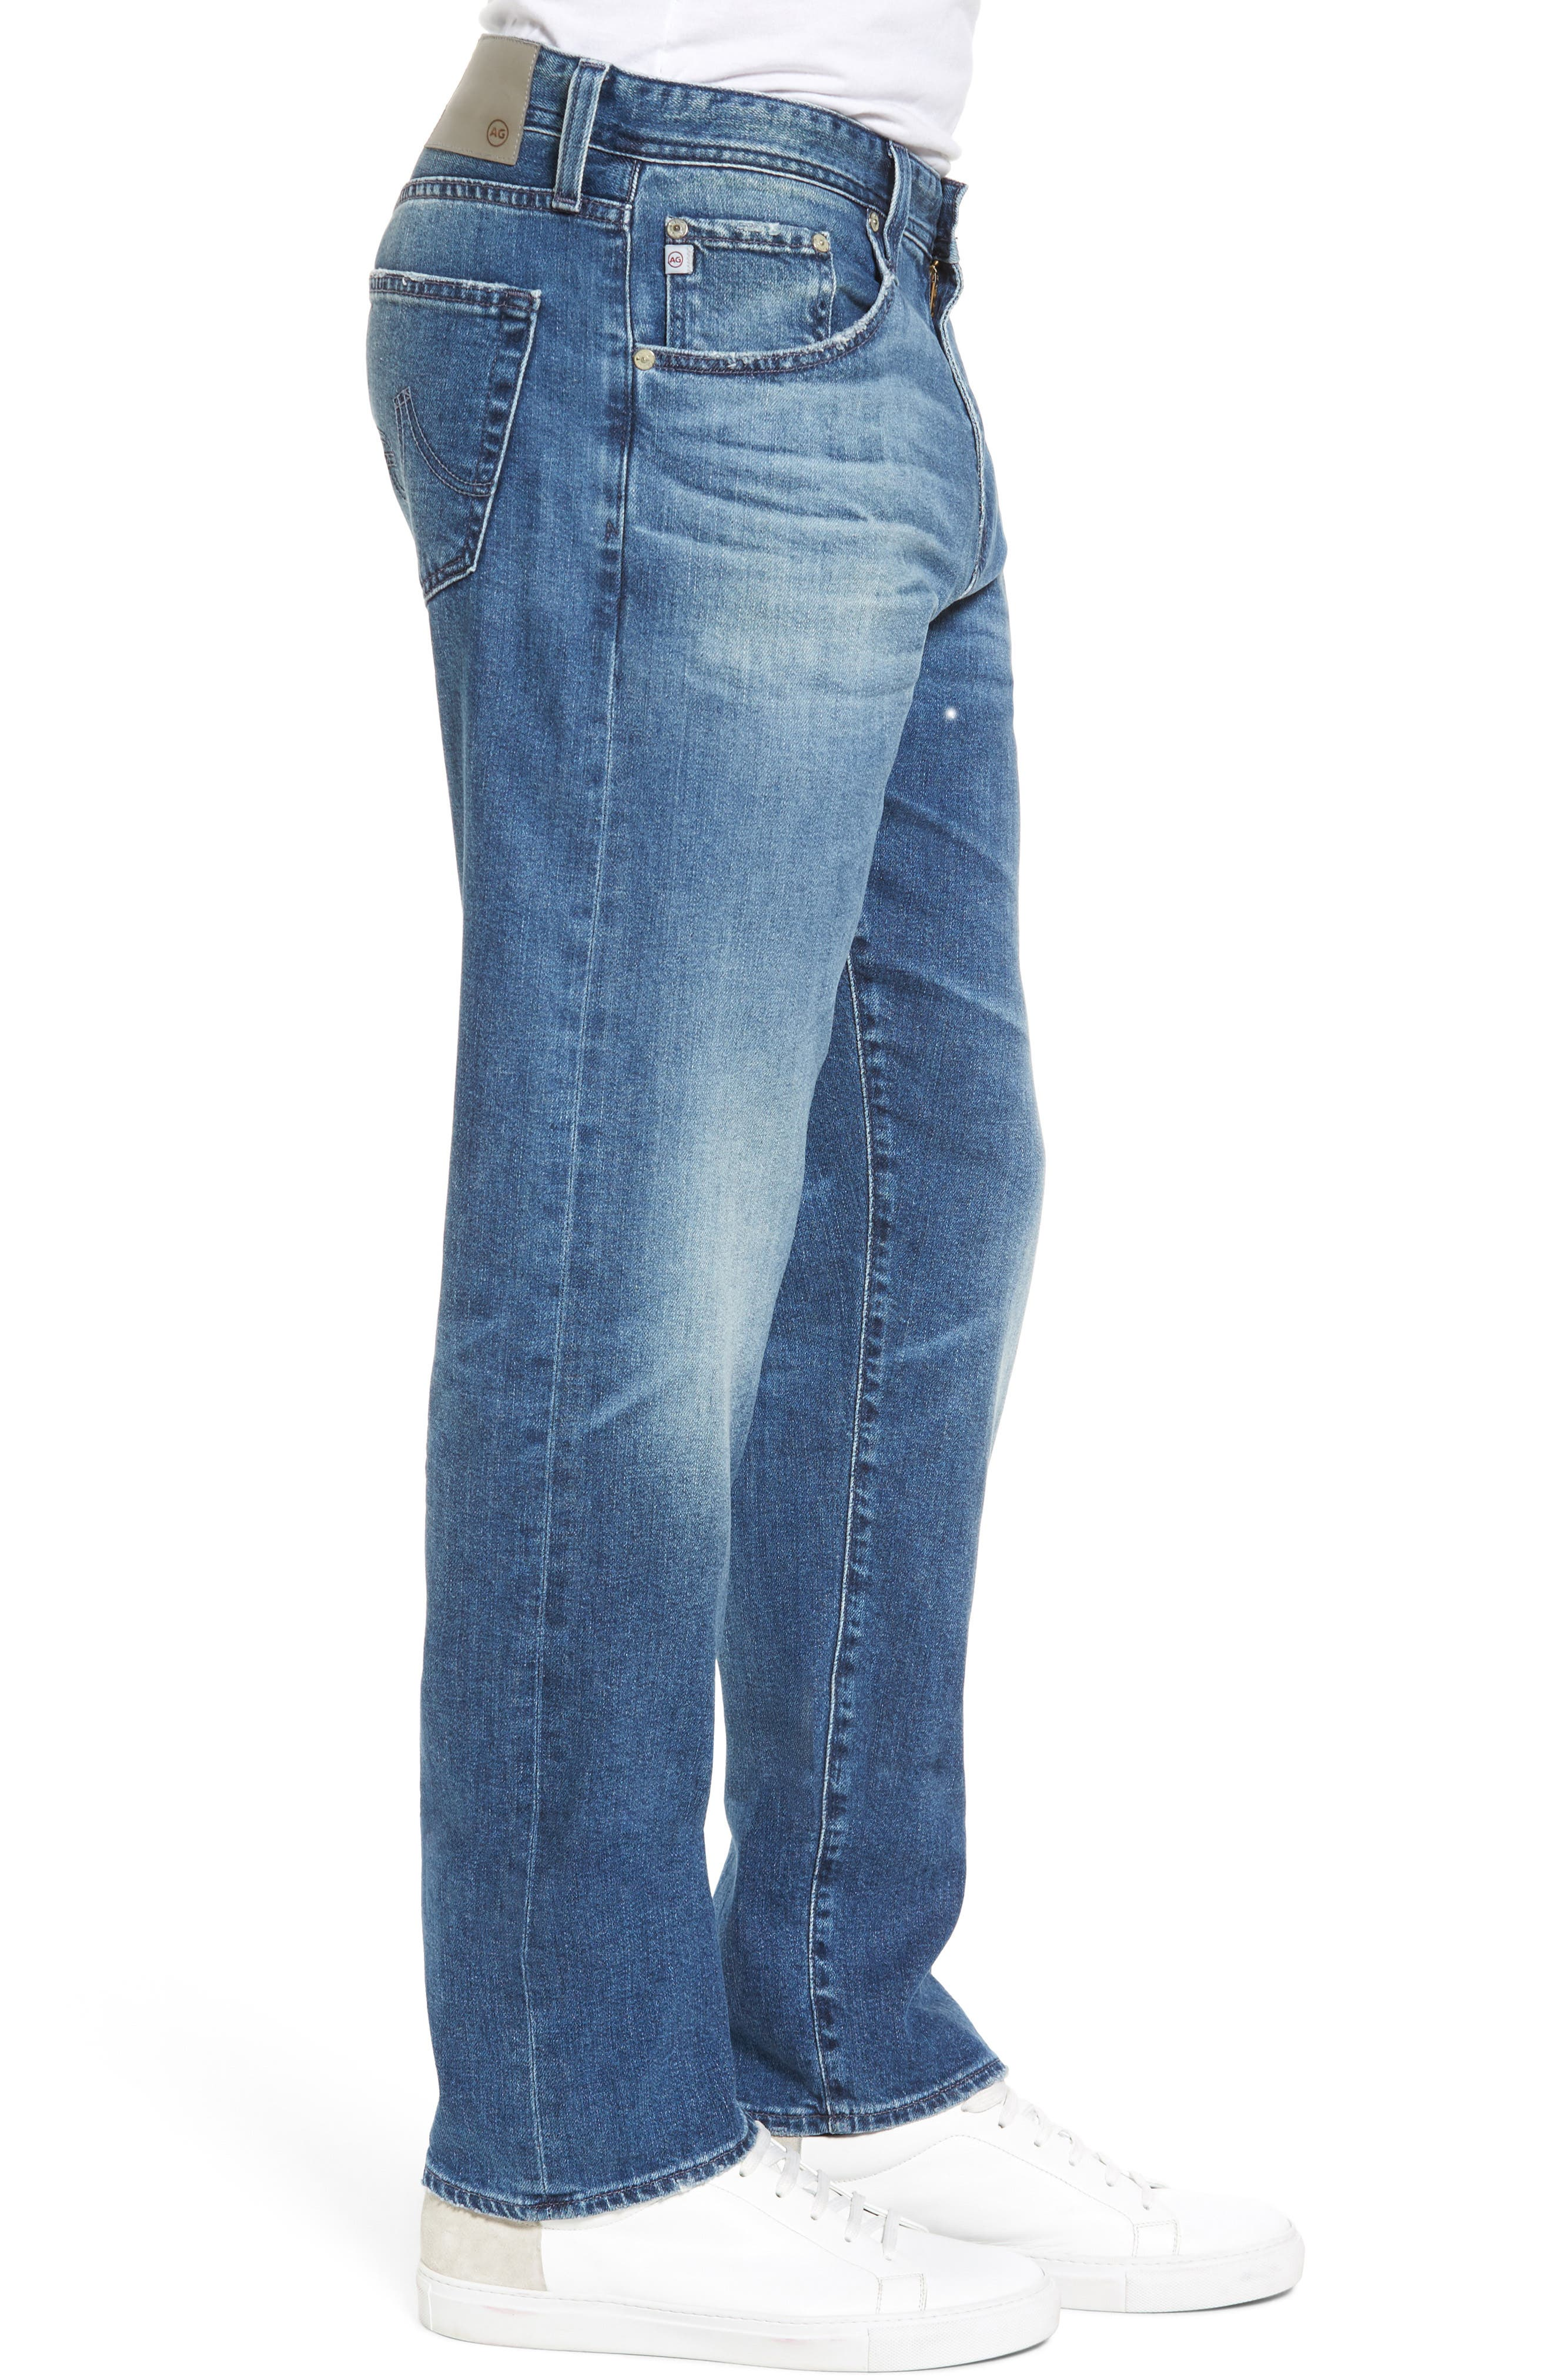 Ives Straight Fit Jeans,                             Alternate thumbnail 3, color,                             468